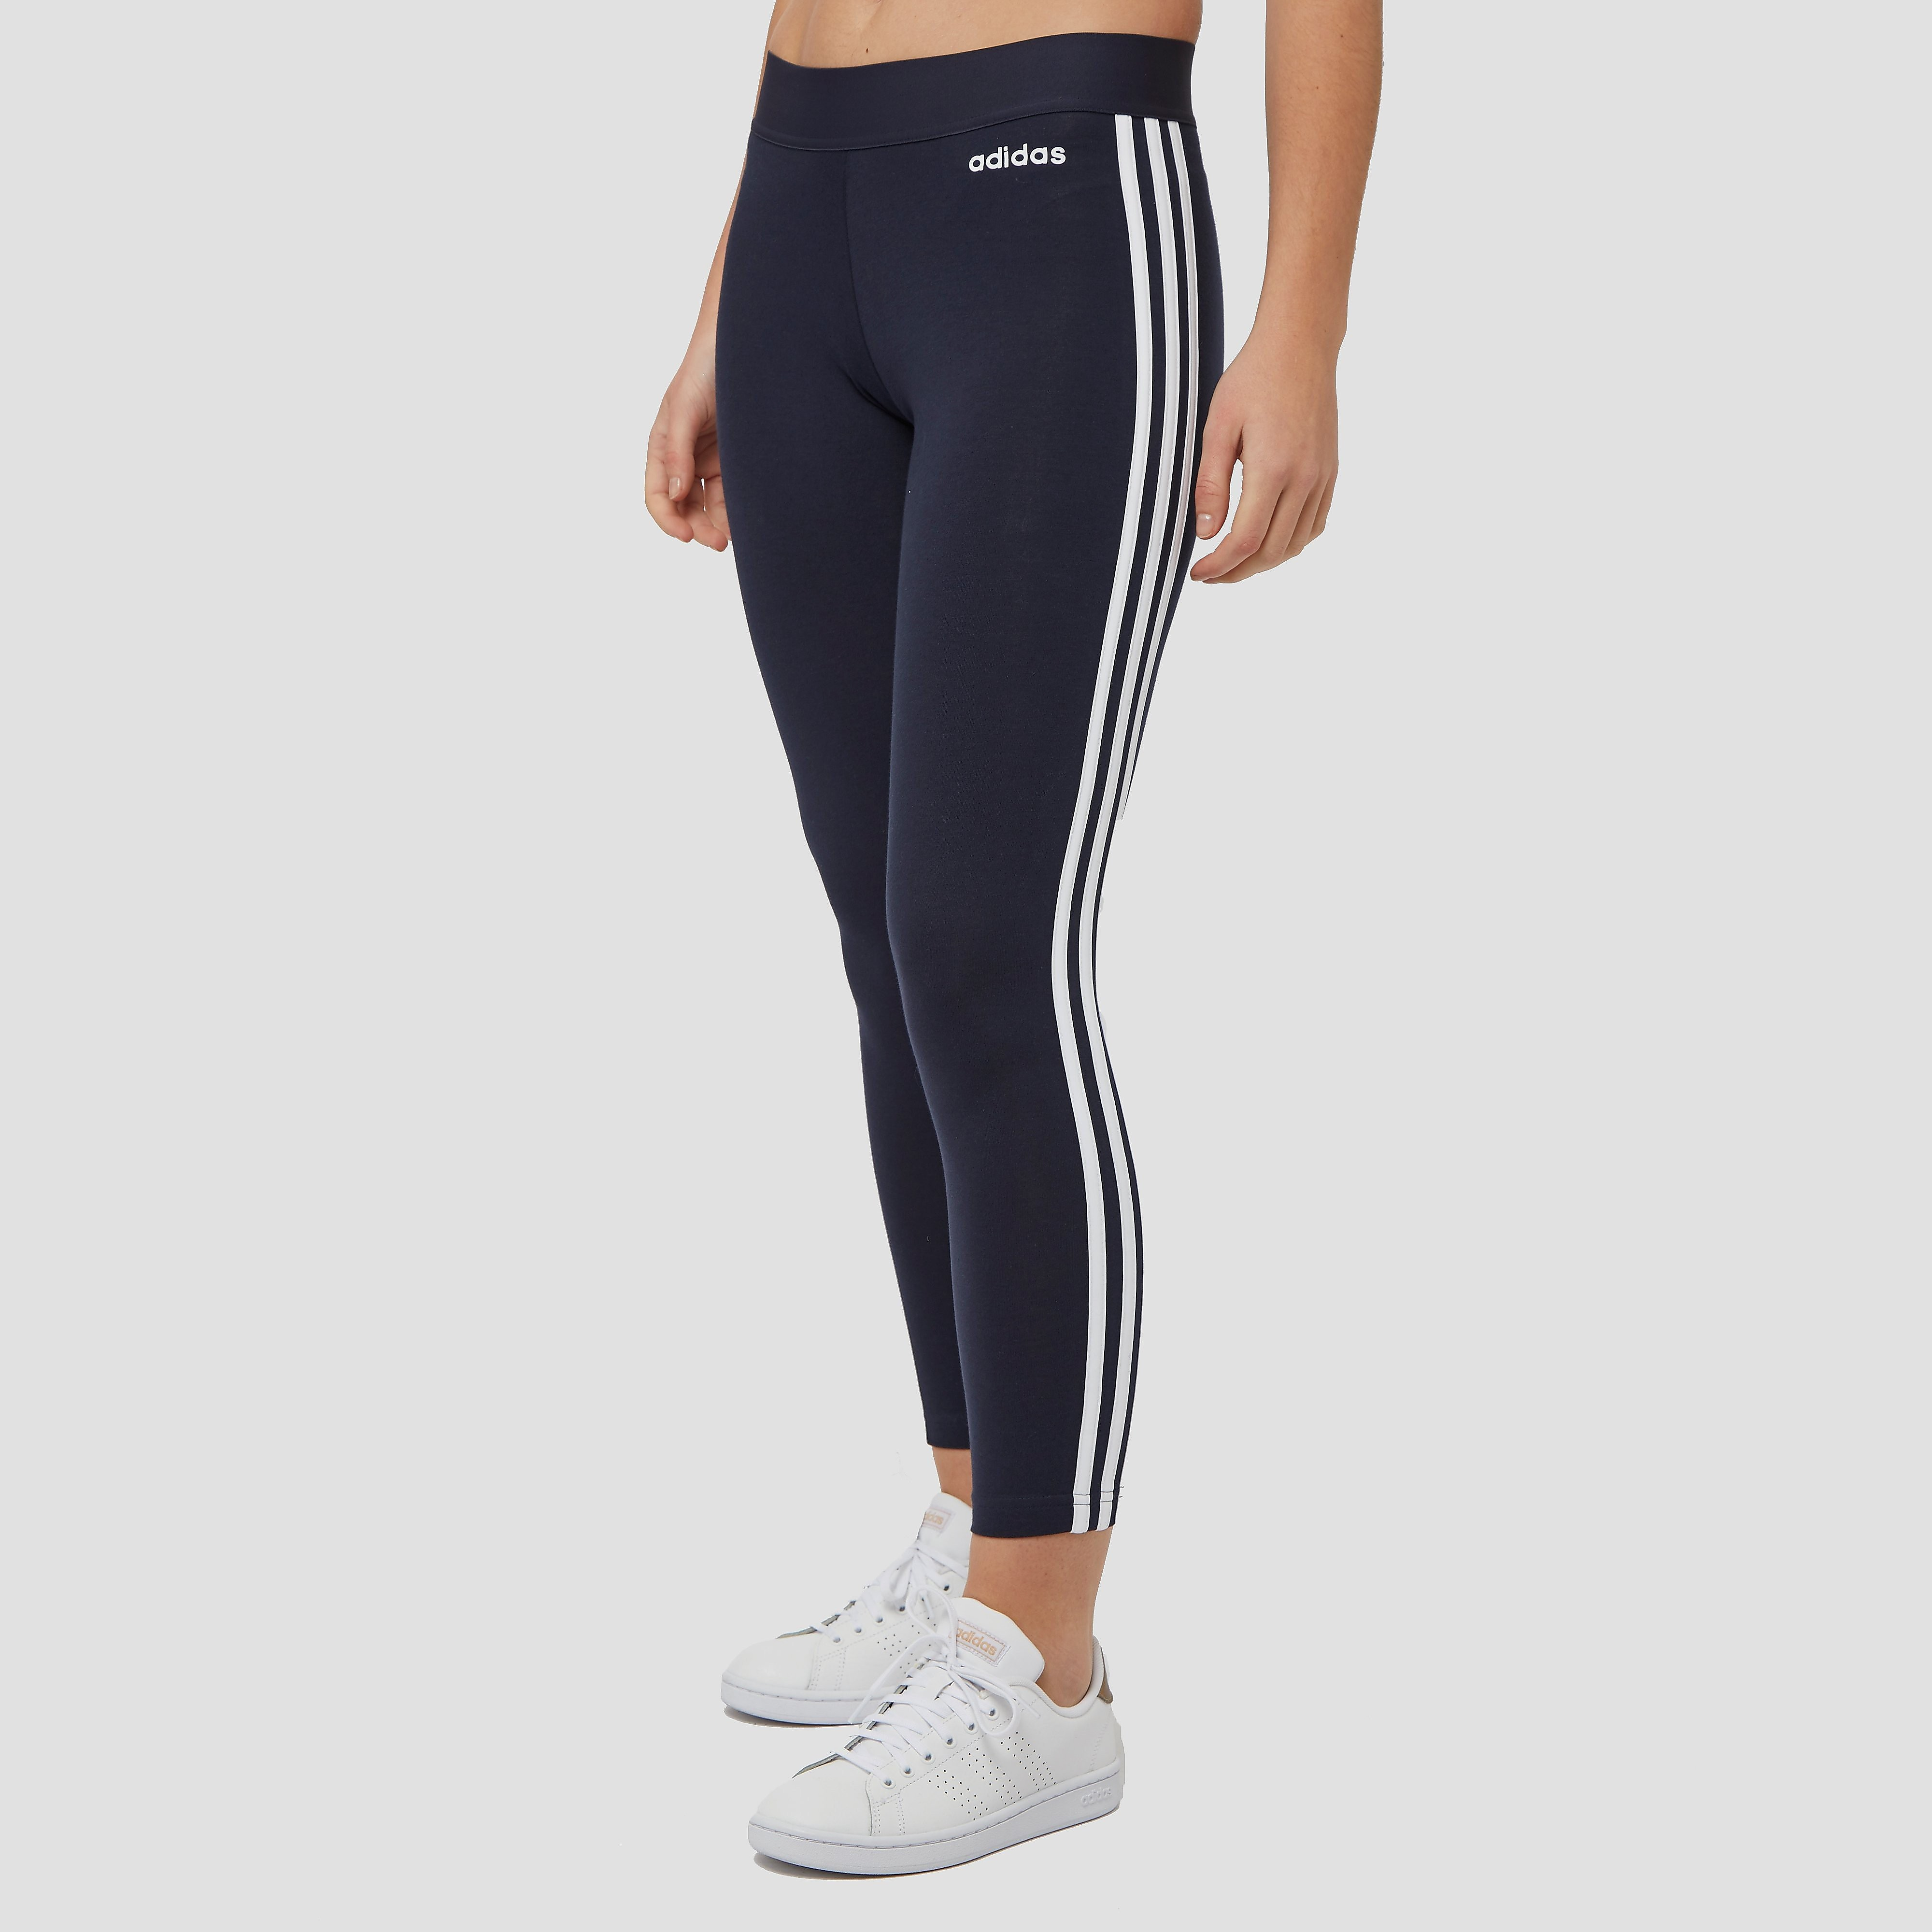 adidas Essentials 3-stripes legging Dames